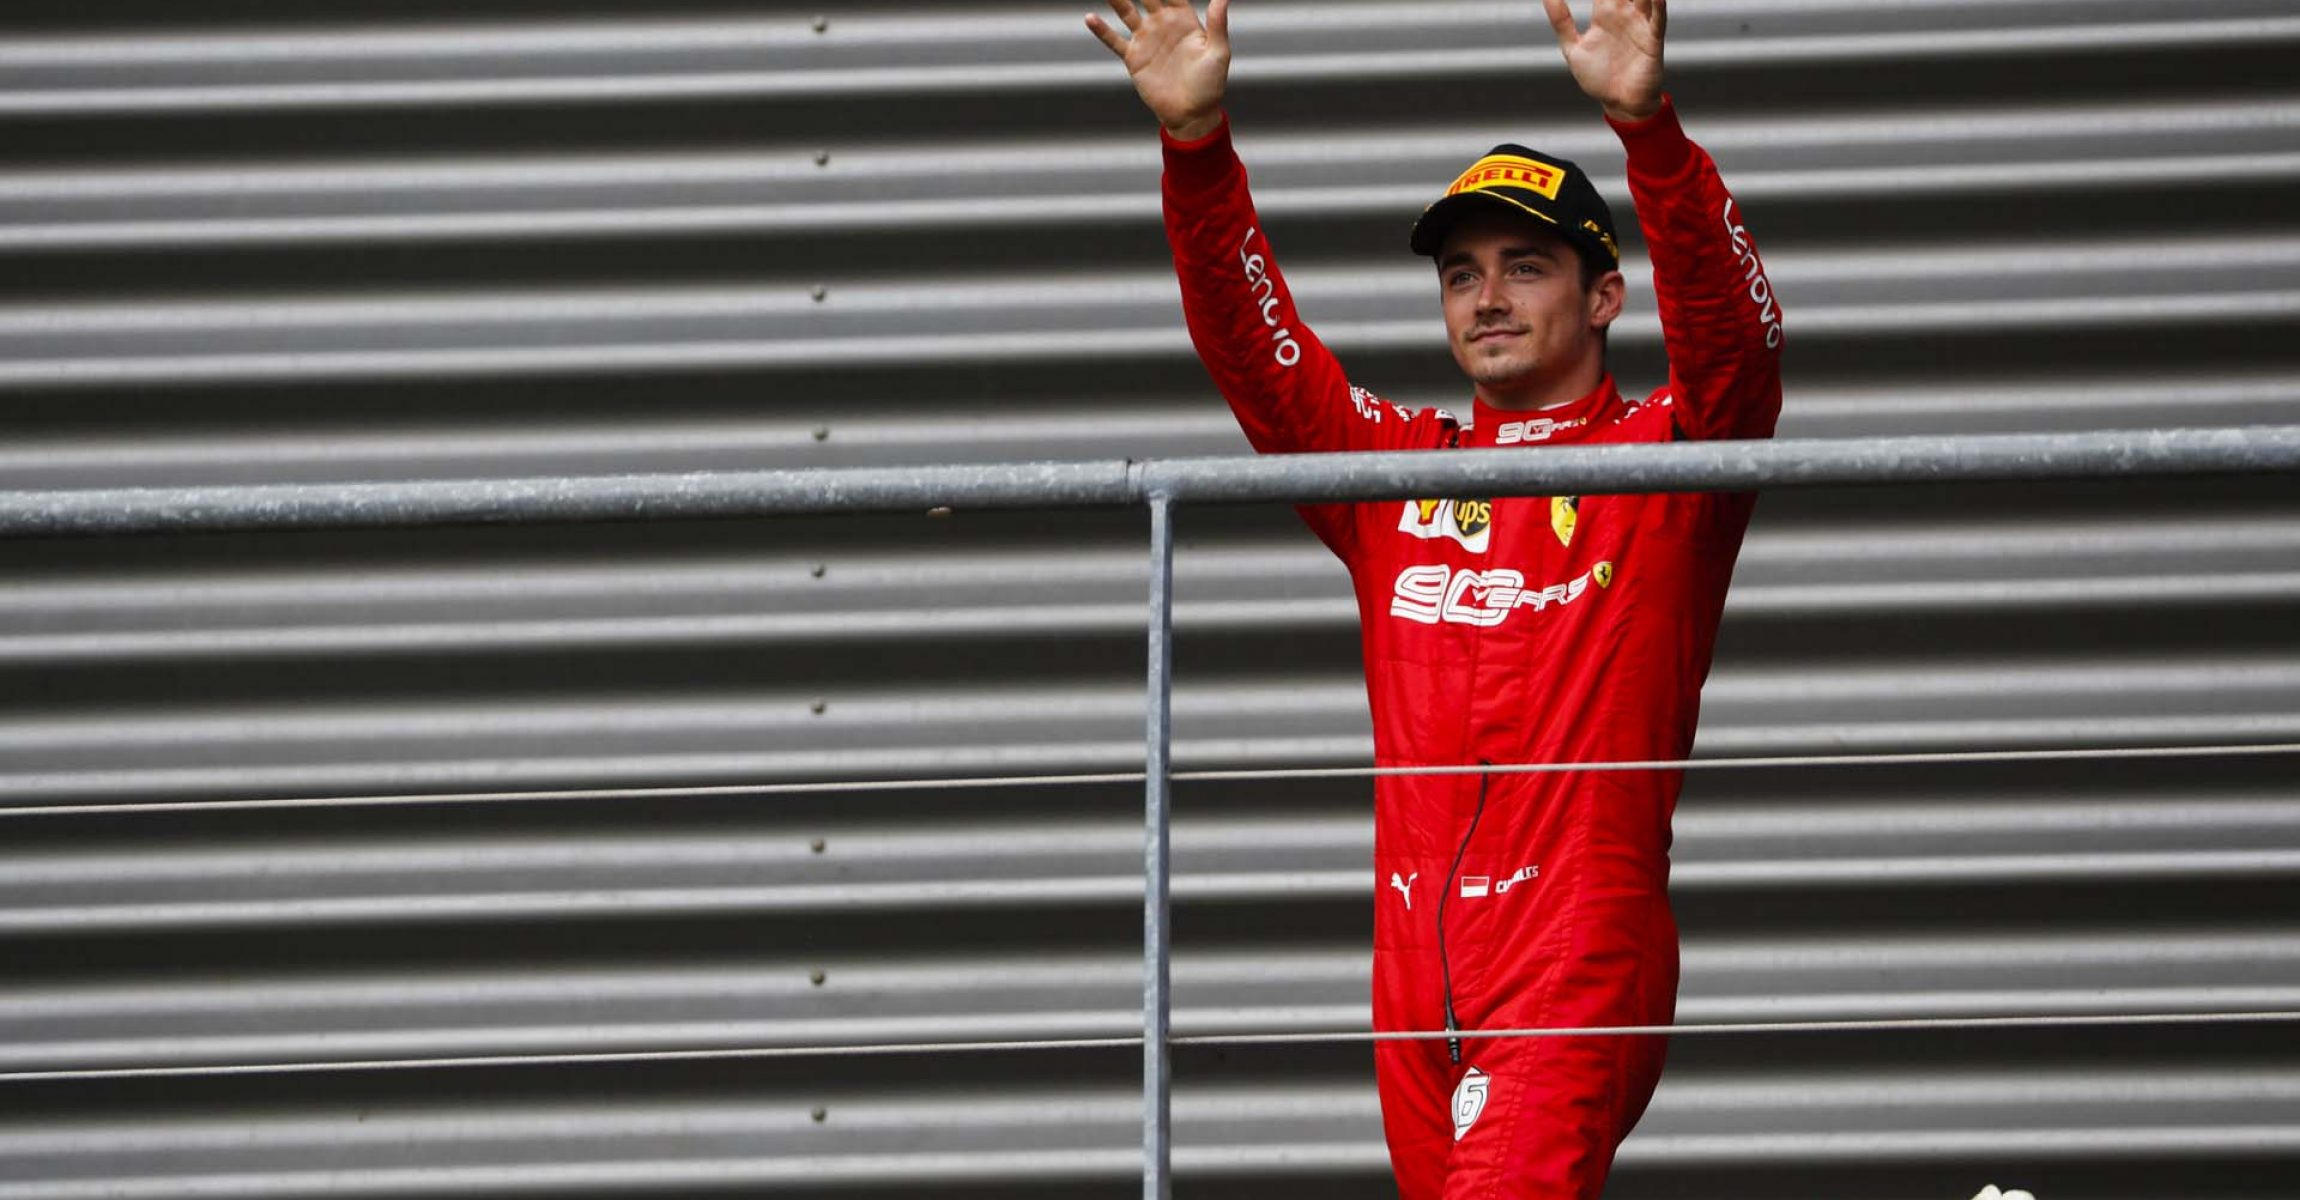 SPA-FRANCORCHAMPS, BELGIUM - SEPTEMBER 01: Charles Leclerc, Ferrari, celebrates victory on the podium during the Belgian GP at Spa-Francorchamps on September 01, 2019 in Spa-Francorchamps, Belgium. (Photo by Sam Bloxham / LAT Images)